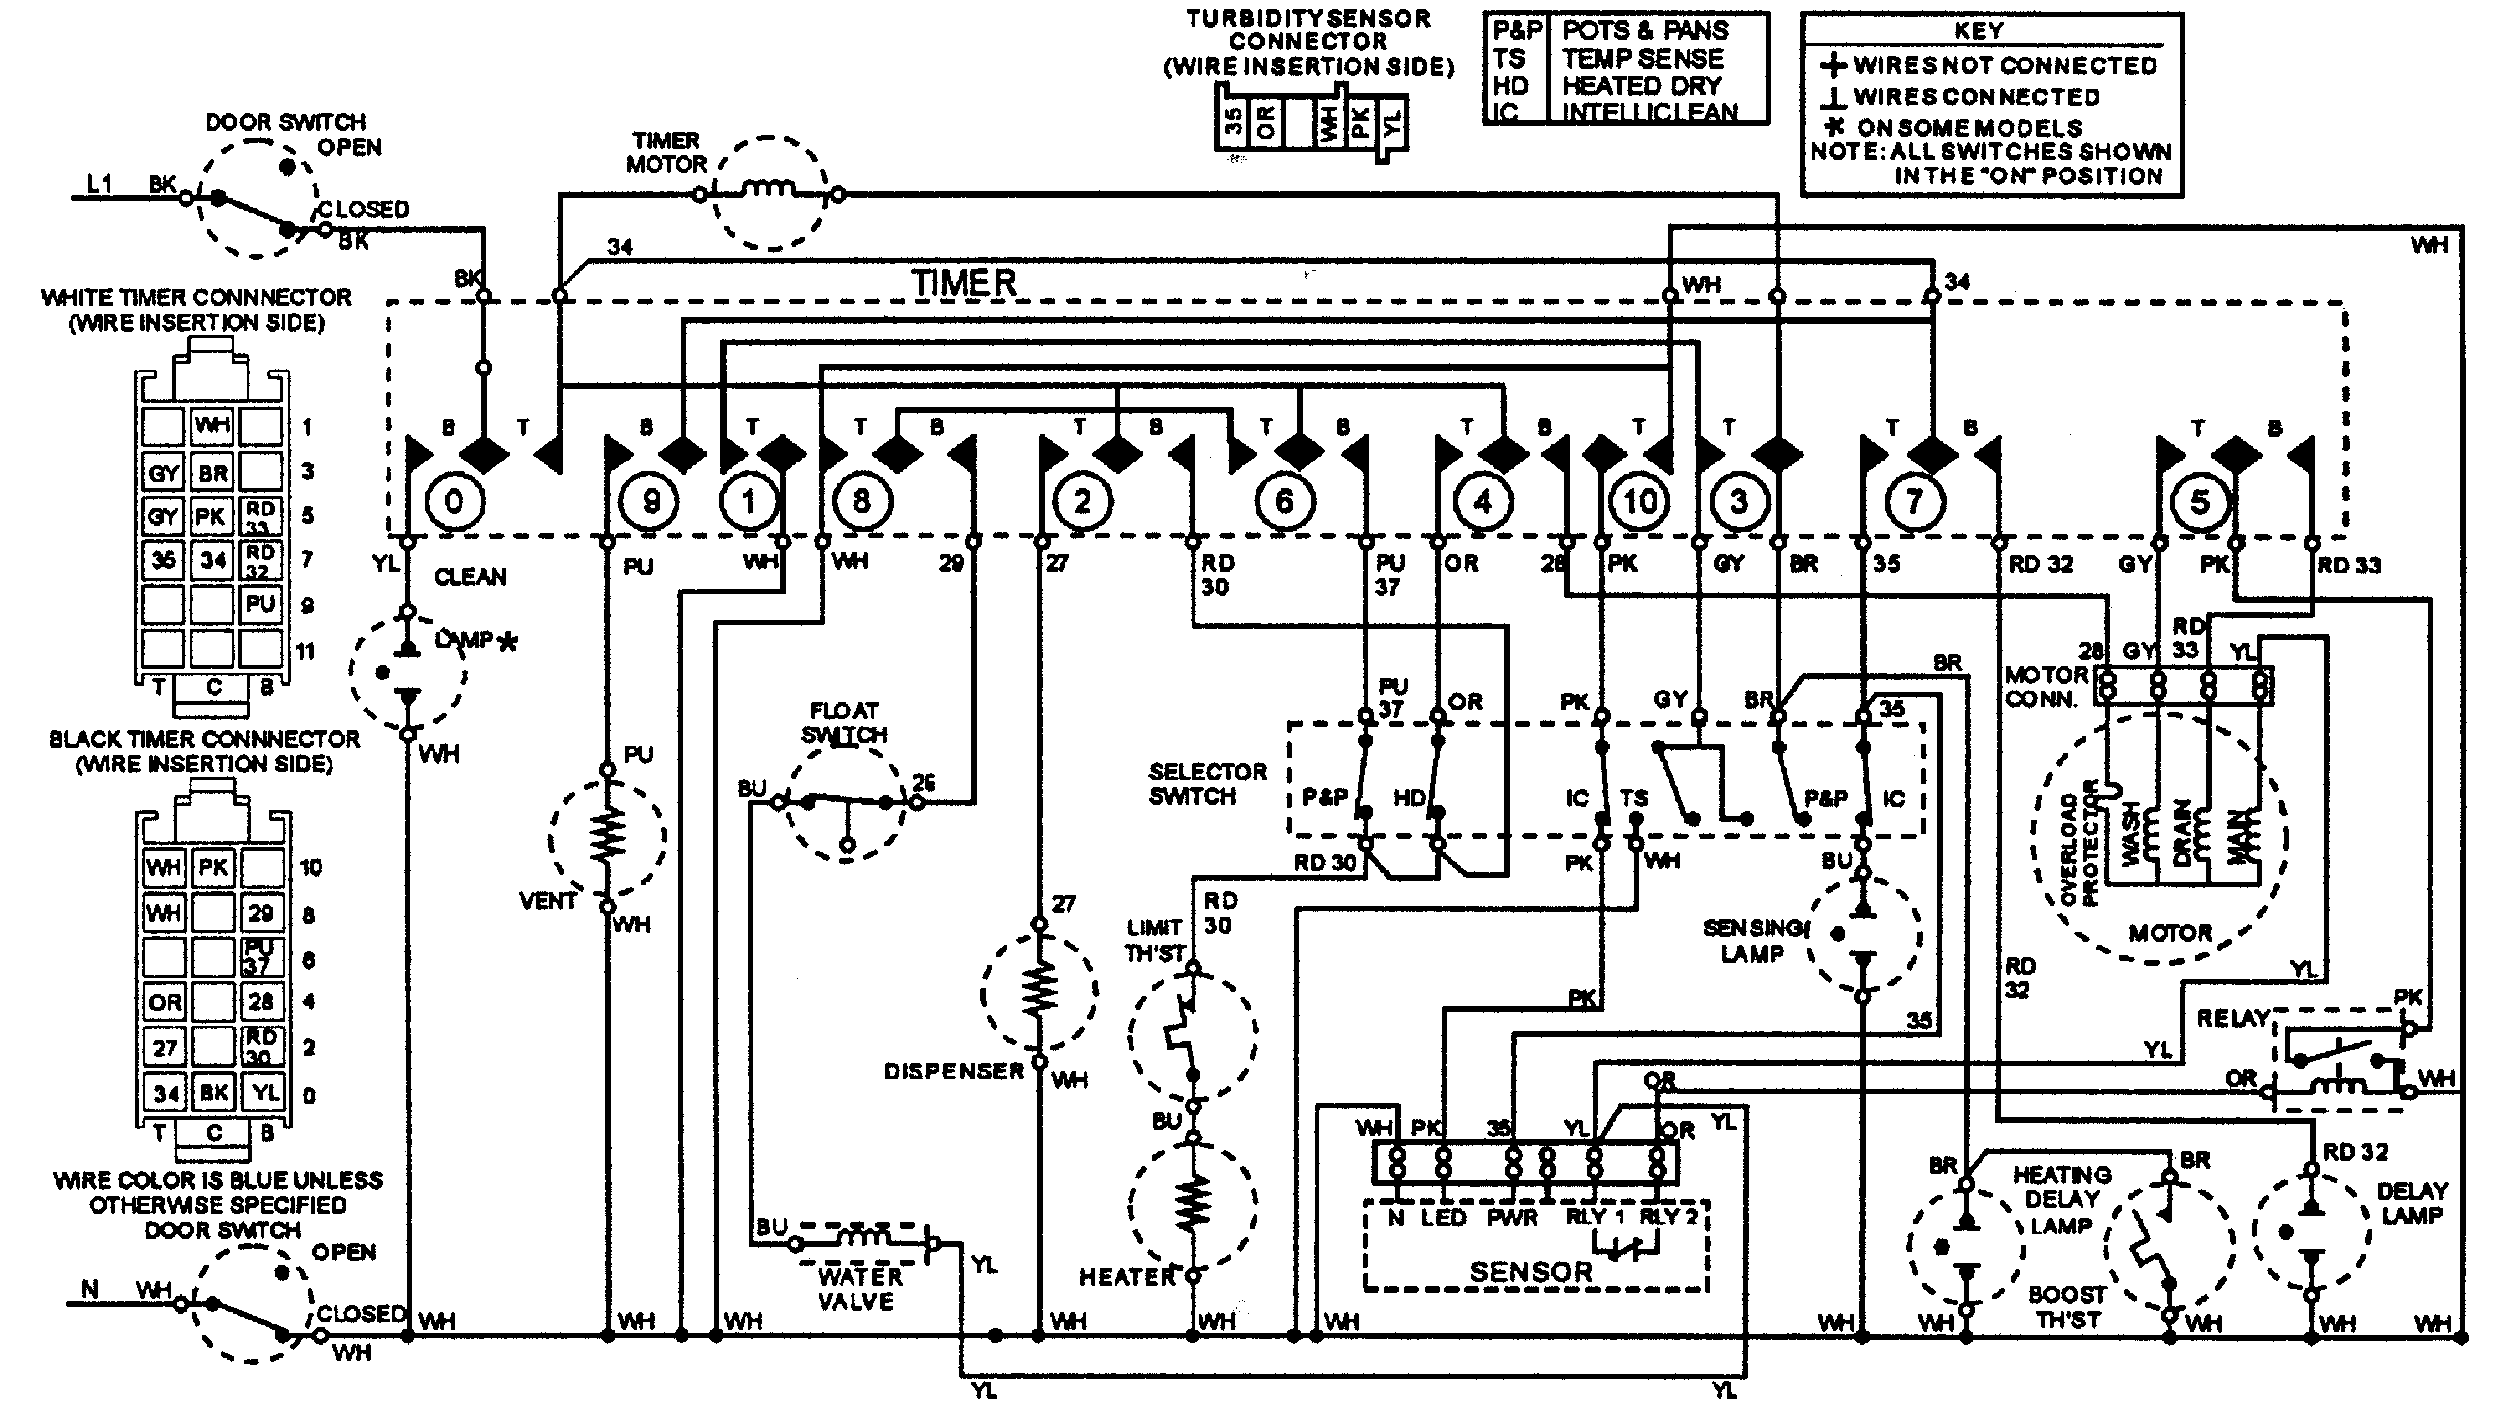 Whirlpool Washing Machine Wiring Diagram And | Whirlpool washing machine, Washing  machine, Whirlpool | Whirlpool Washer Electrical Diagram |  | Pinterest